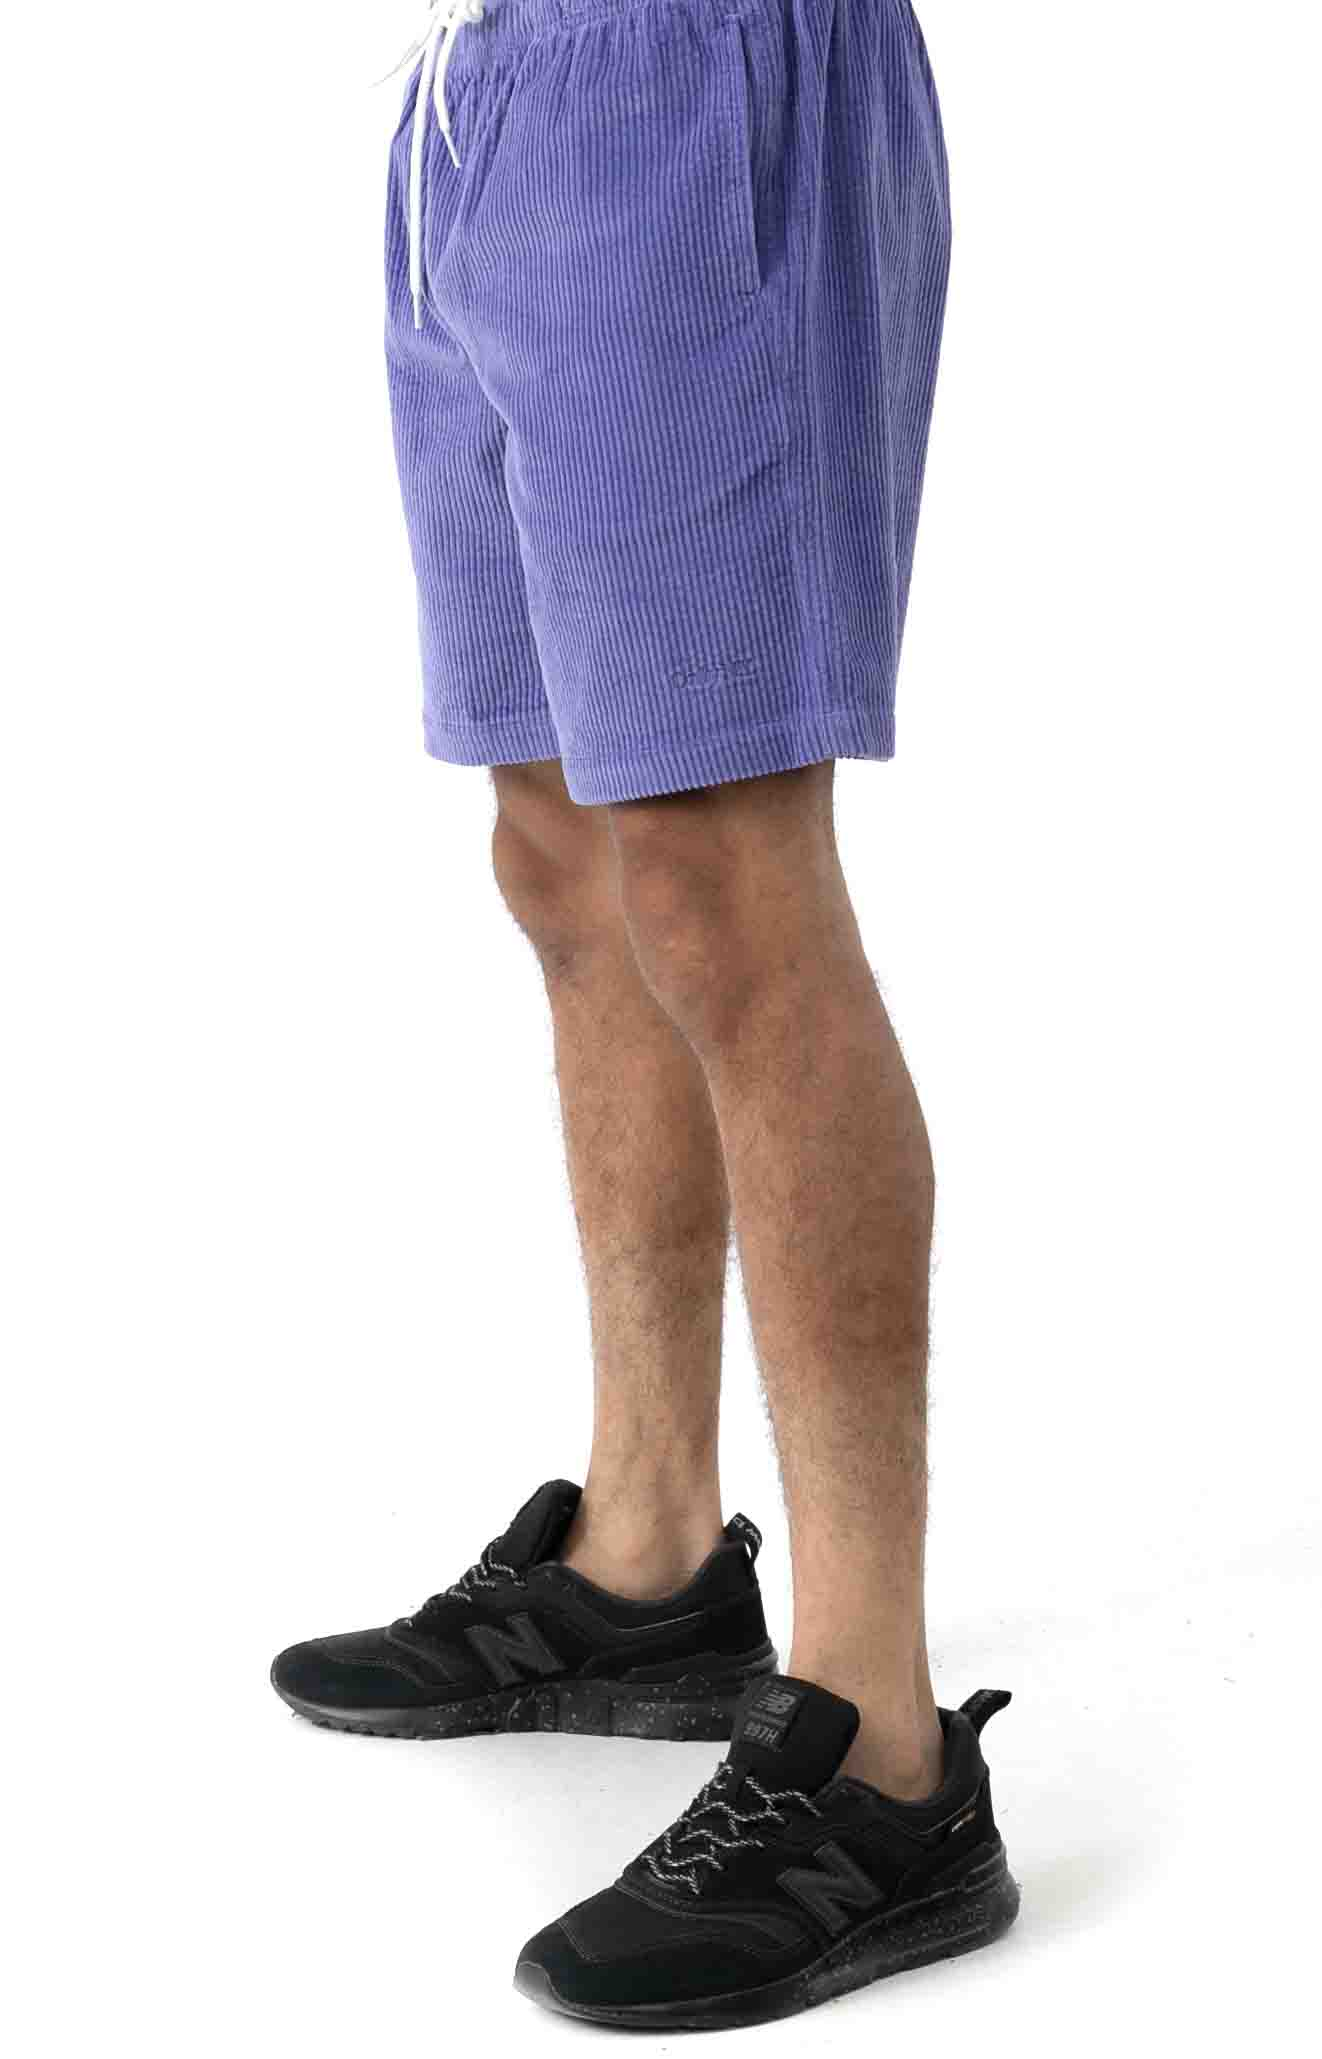 Wide Wale Corduroy Chill Shorts - Periwinkle